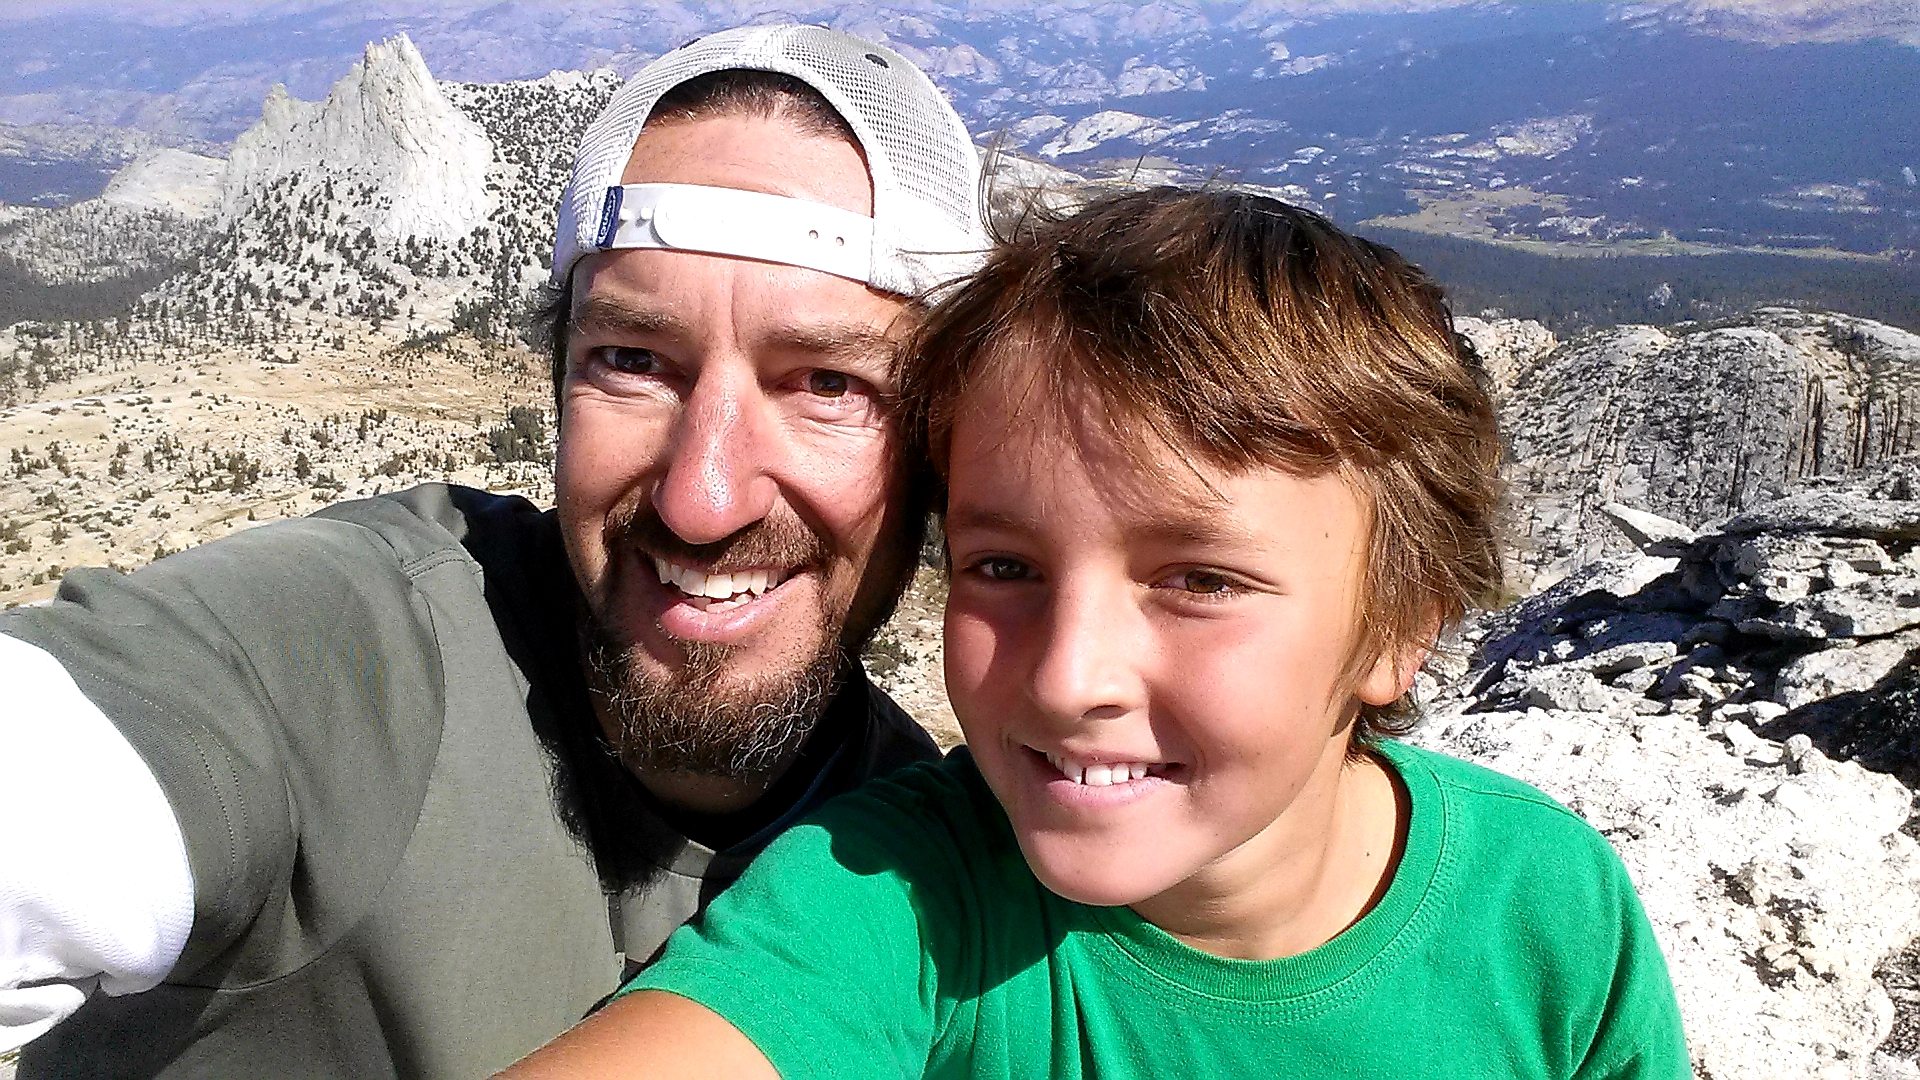 Kramer and son enjoying a beautiful day in Tahoe!